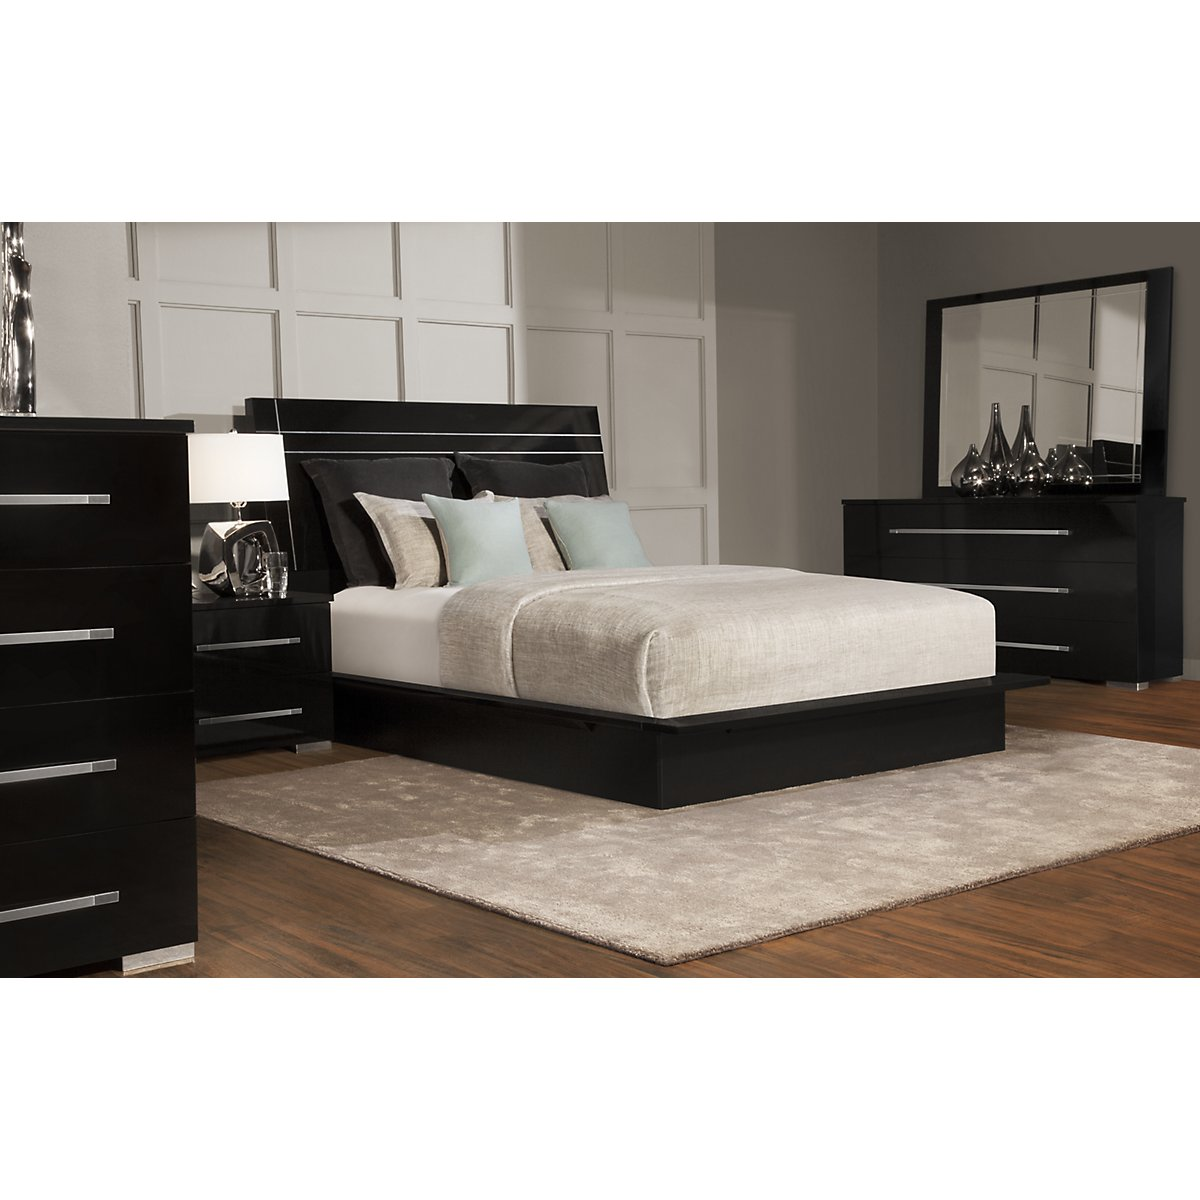 Dimora3 Black Wood Platform Bed Queen Amp King Beds